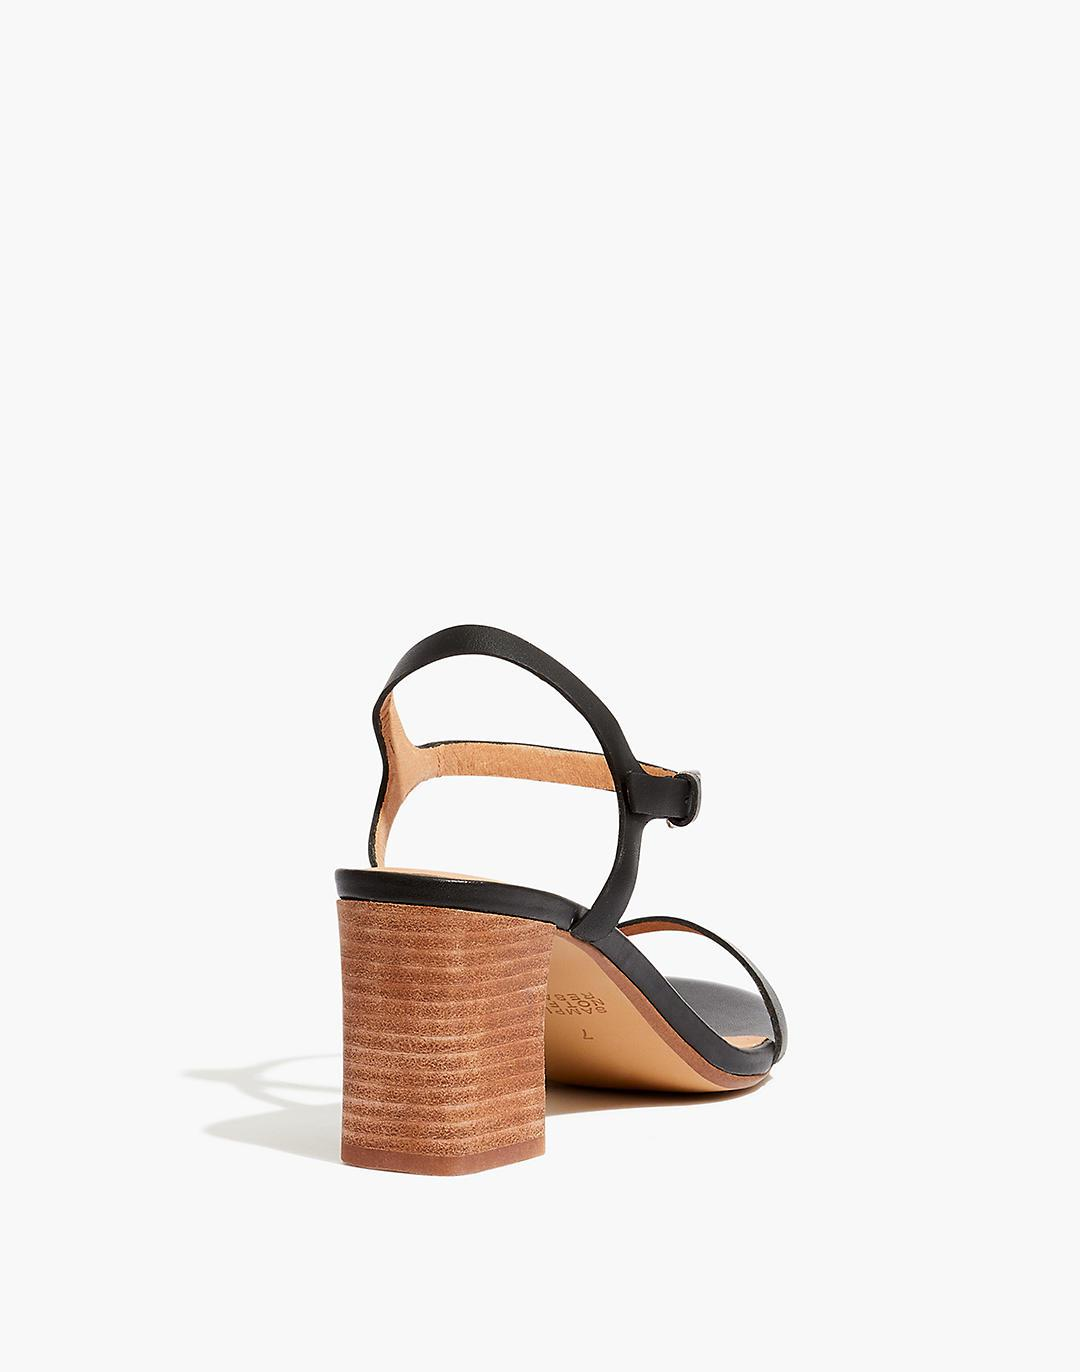 The Holly Ankle-Strap Sandal in Leather 2